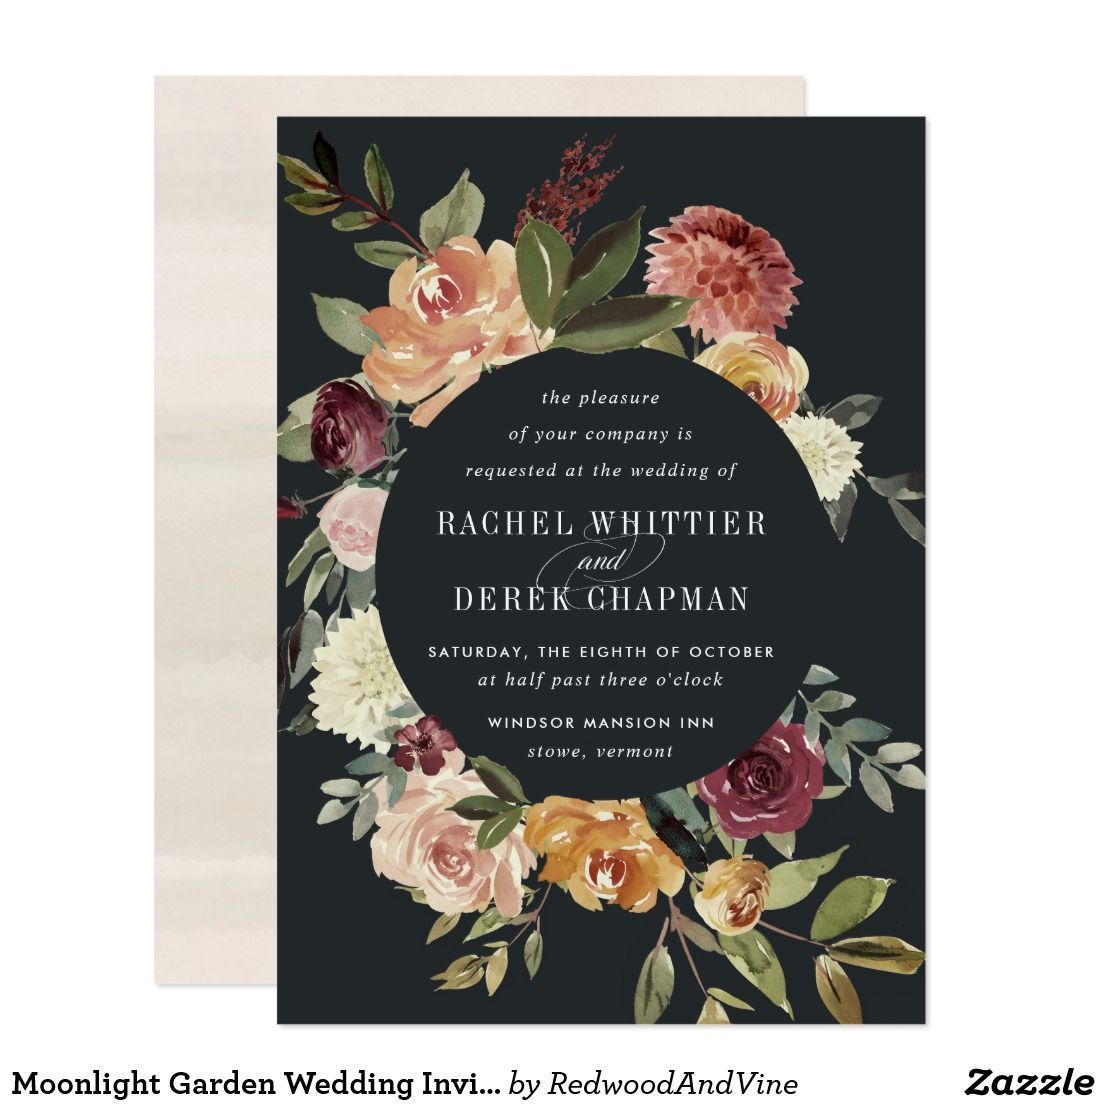 Chic Floral Wedding Invitations Or Fall Winter Weddings Feature Your Details Encircled By Watercolor Roses Mums And Greenery In Rustic Autumn Colors: Rustic Wedding Invitations Fall Colors At Reisefeber.org